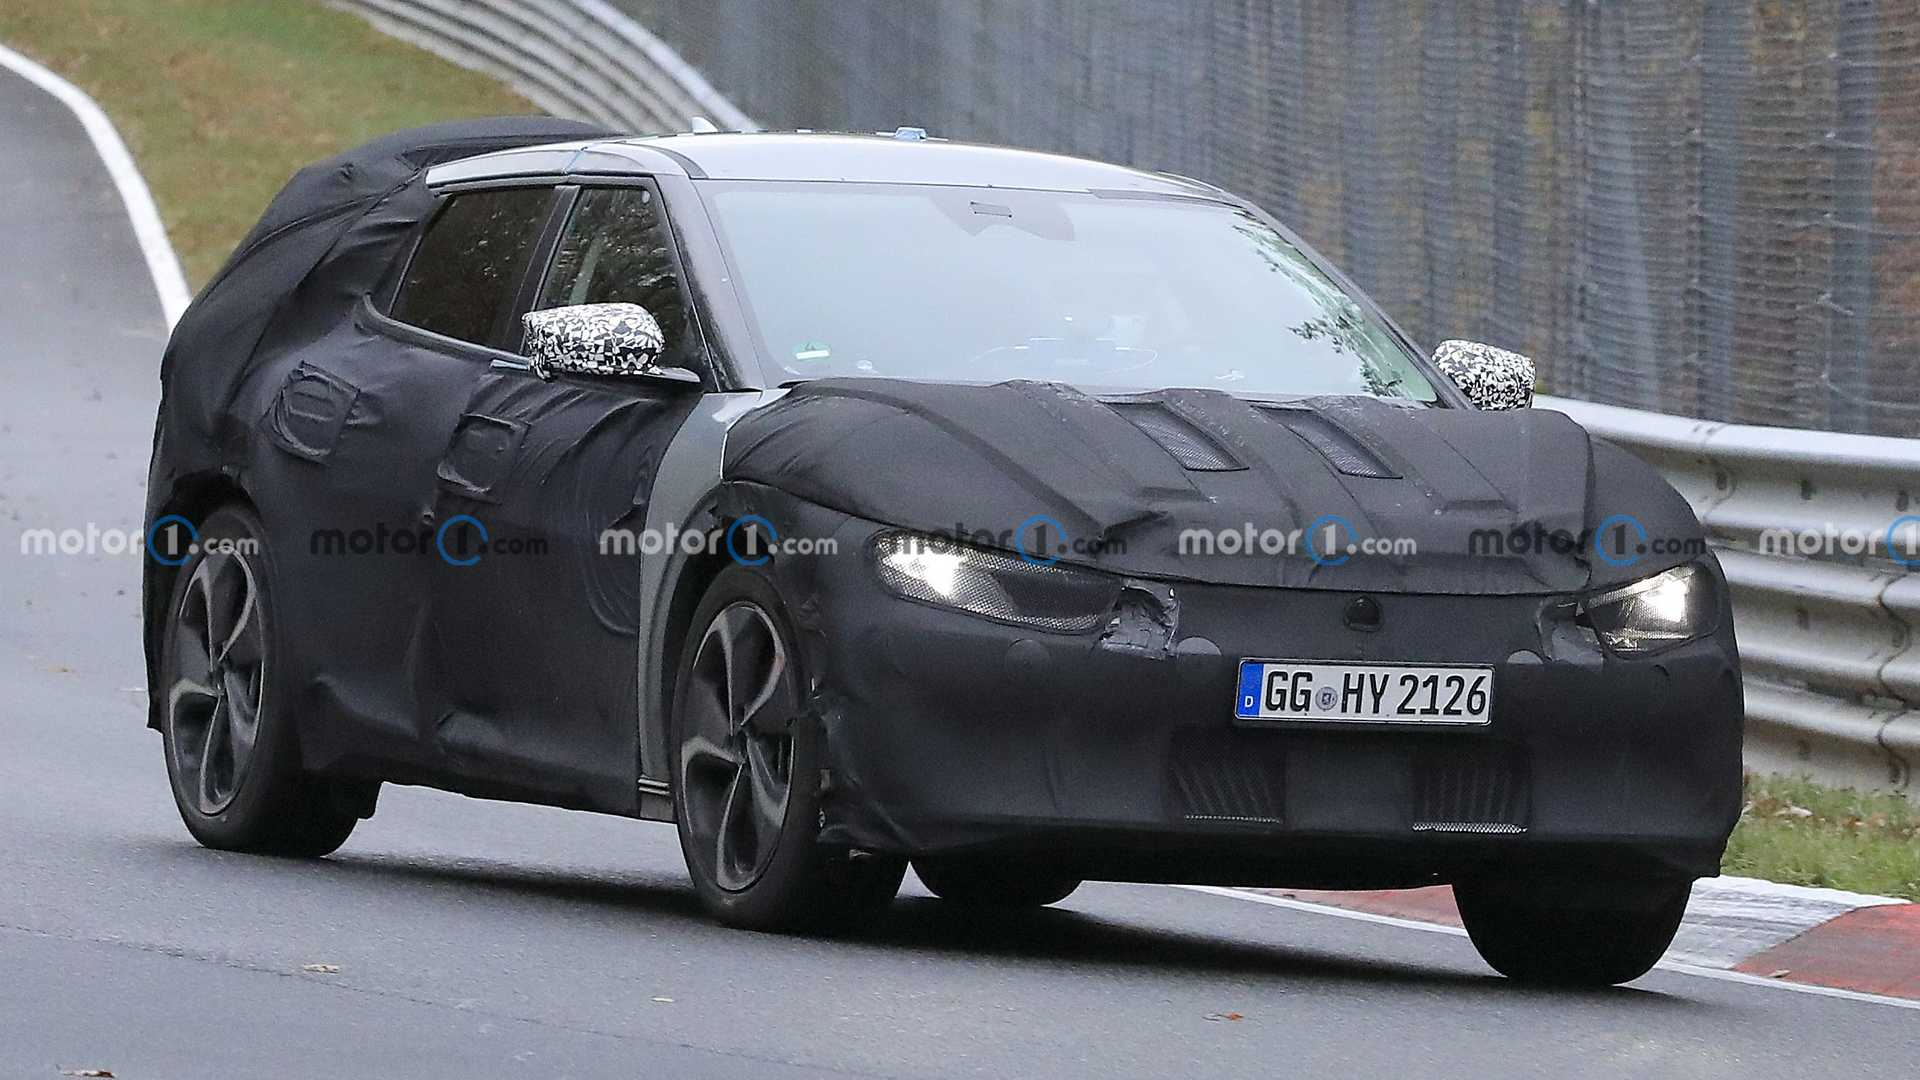 Kia Motors seems to be preparing a mysterious all-electric CUV for its official debut. These spy photos were made at the Nürburgring in Germany.